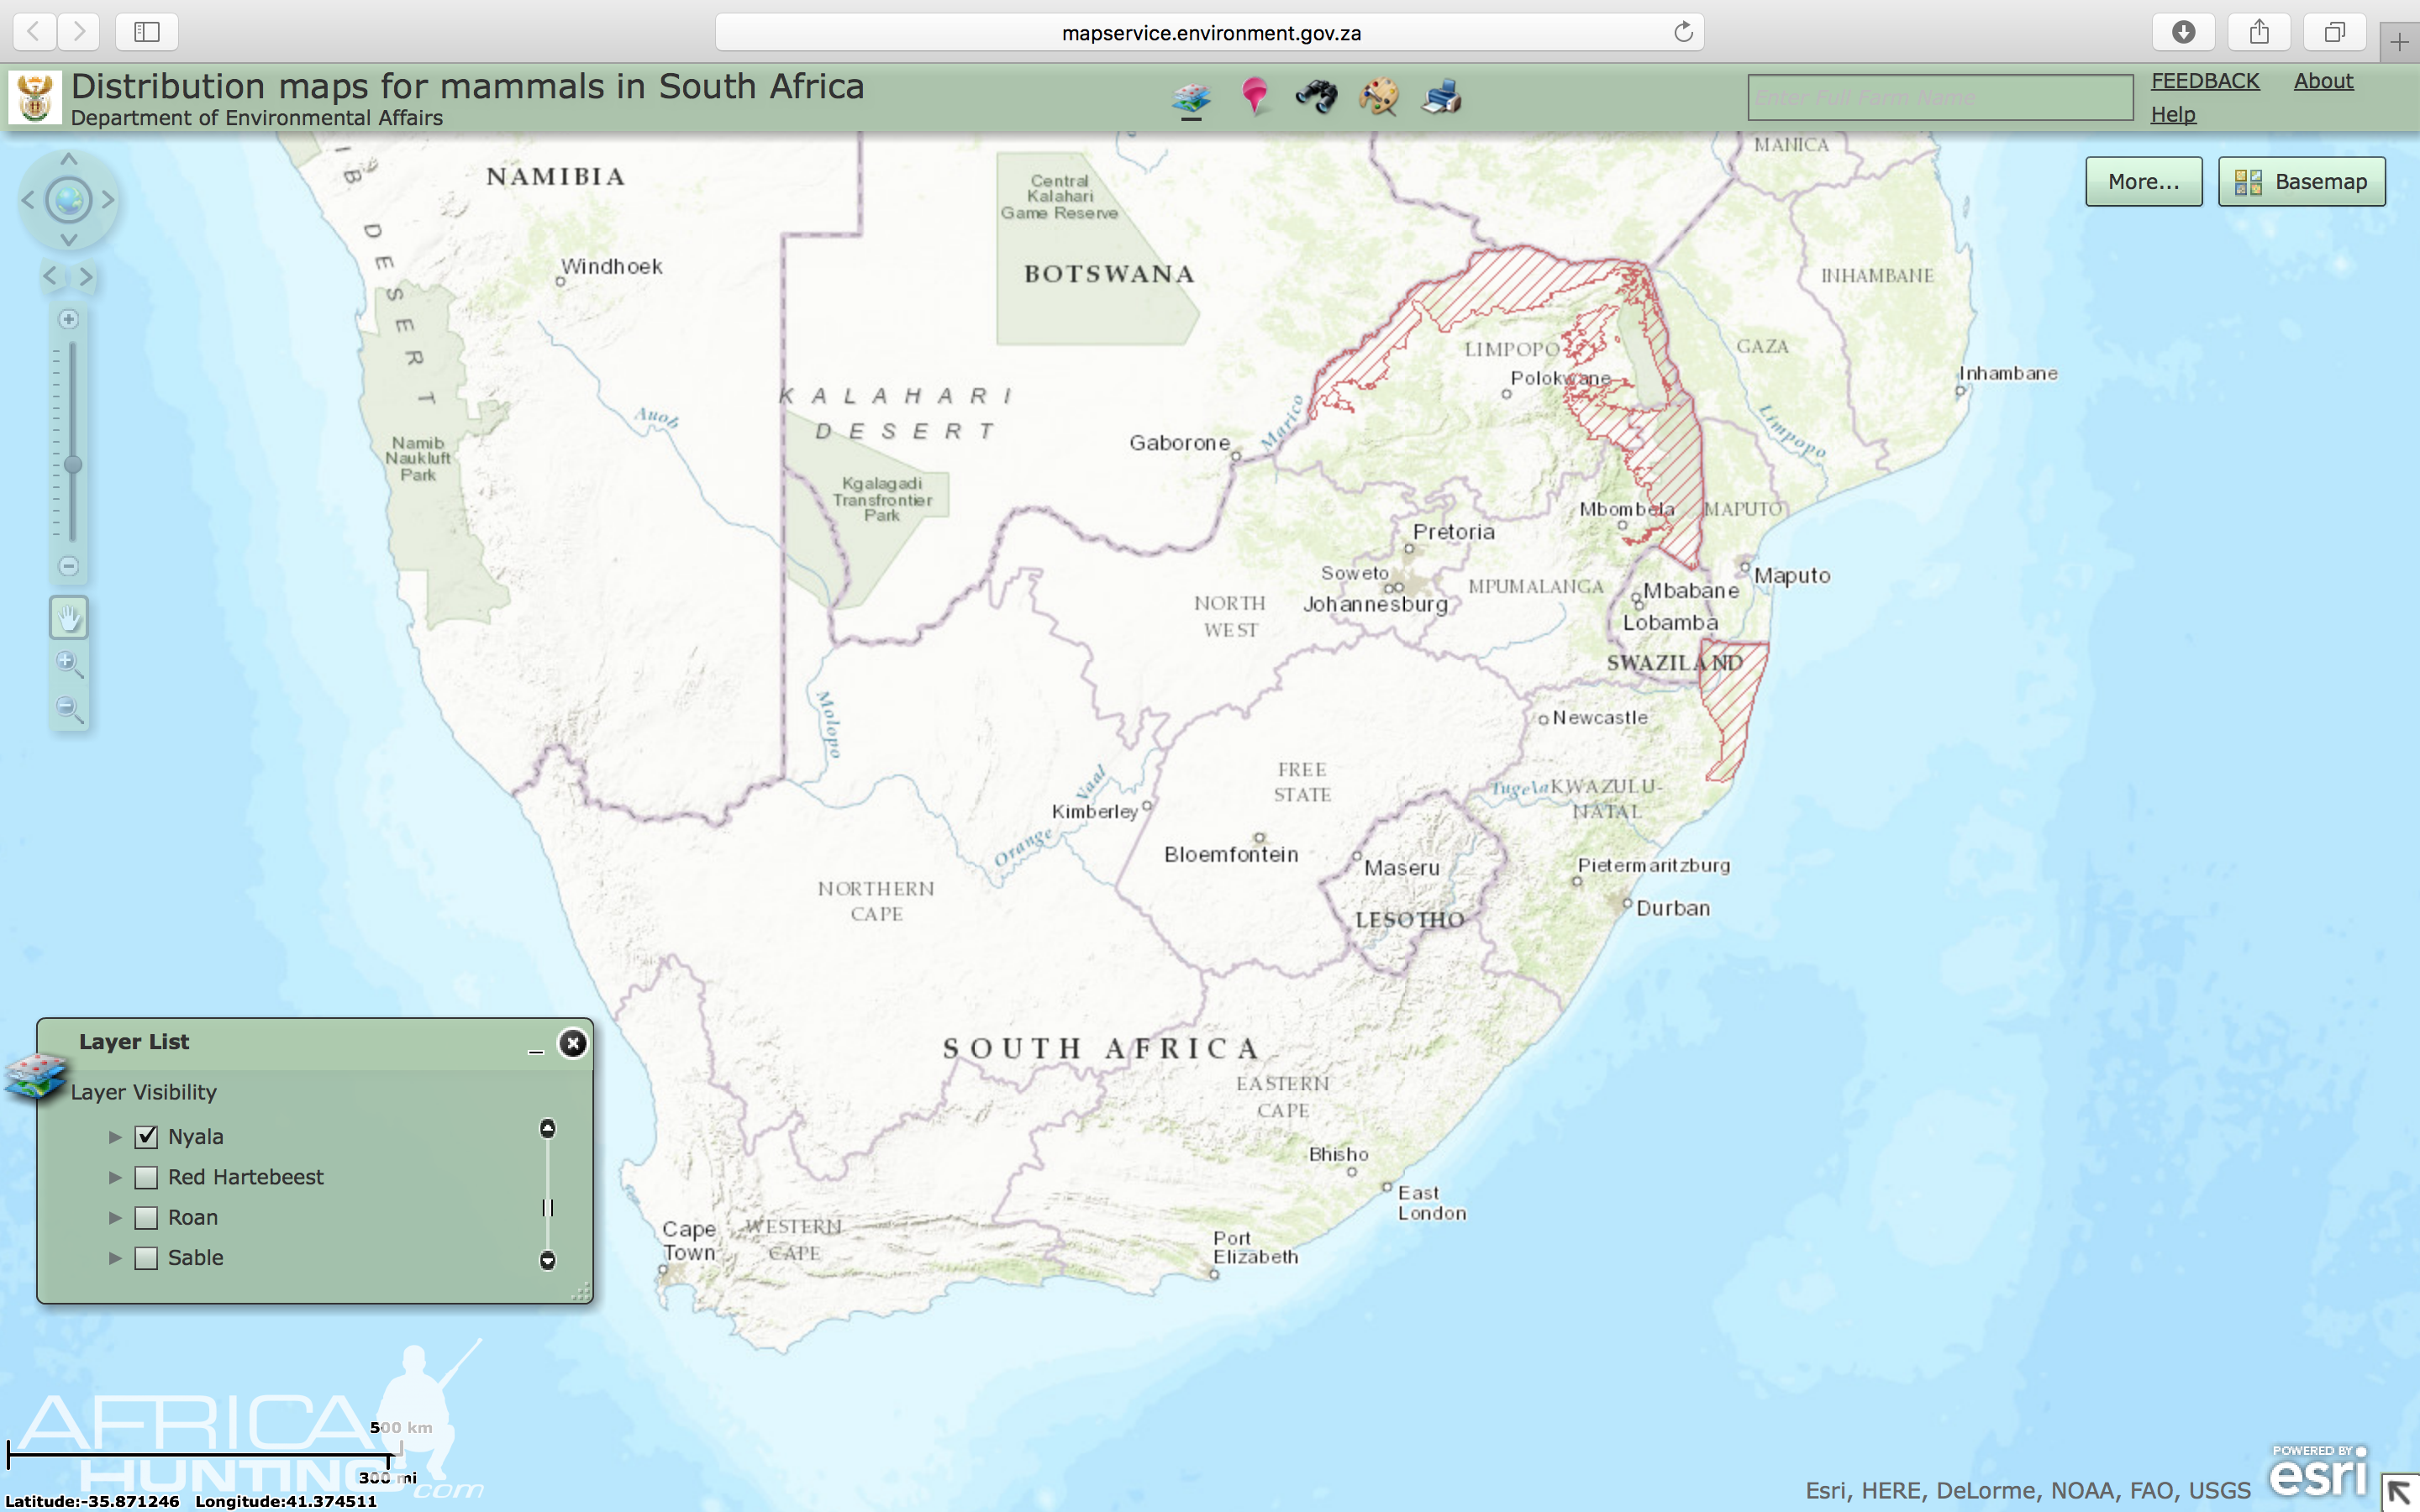 nyala-distribution-map-south-africa.png